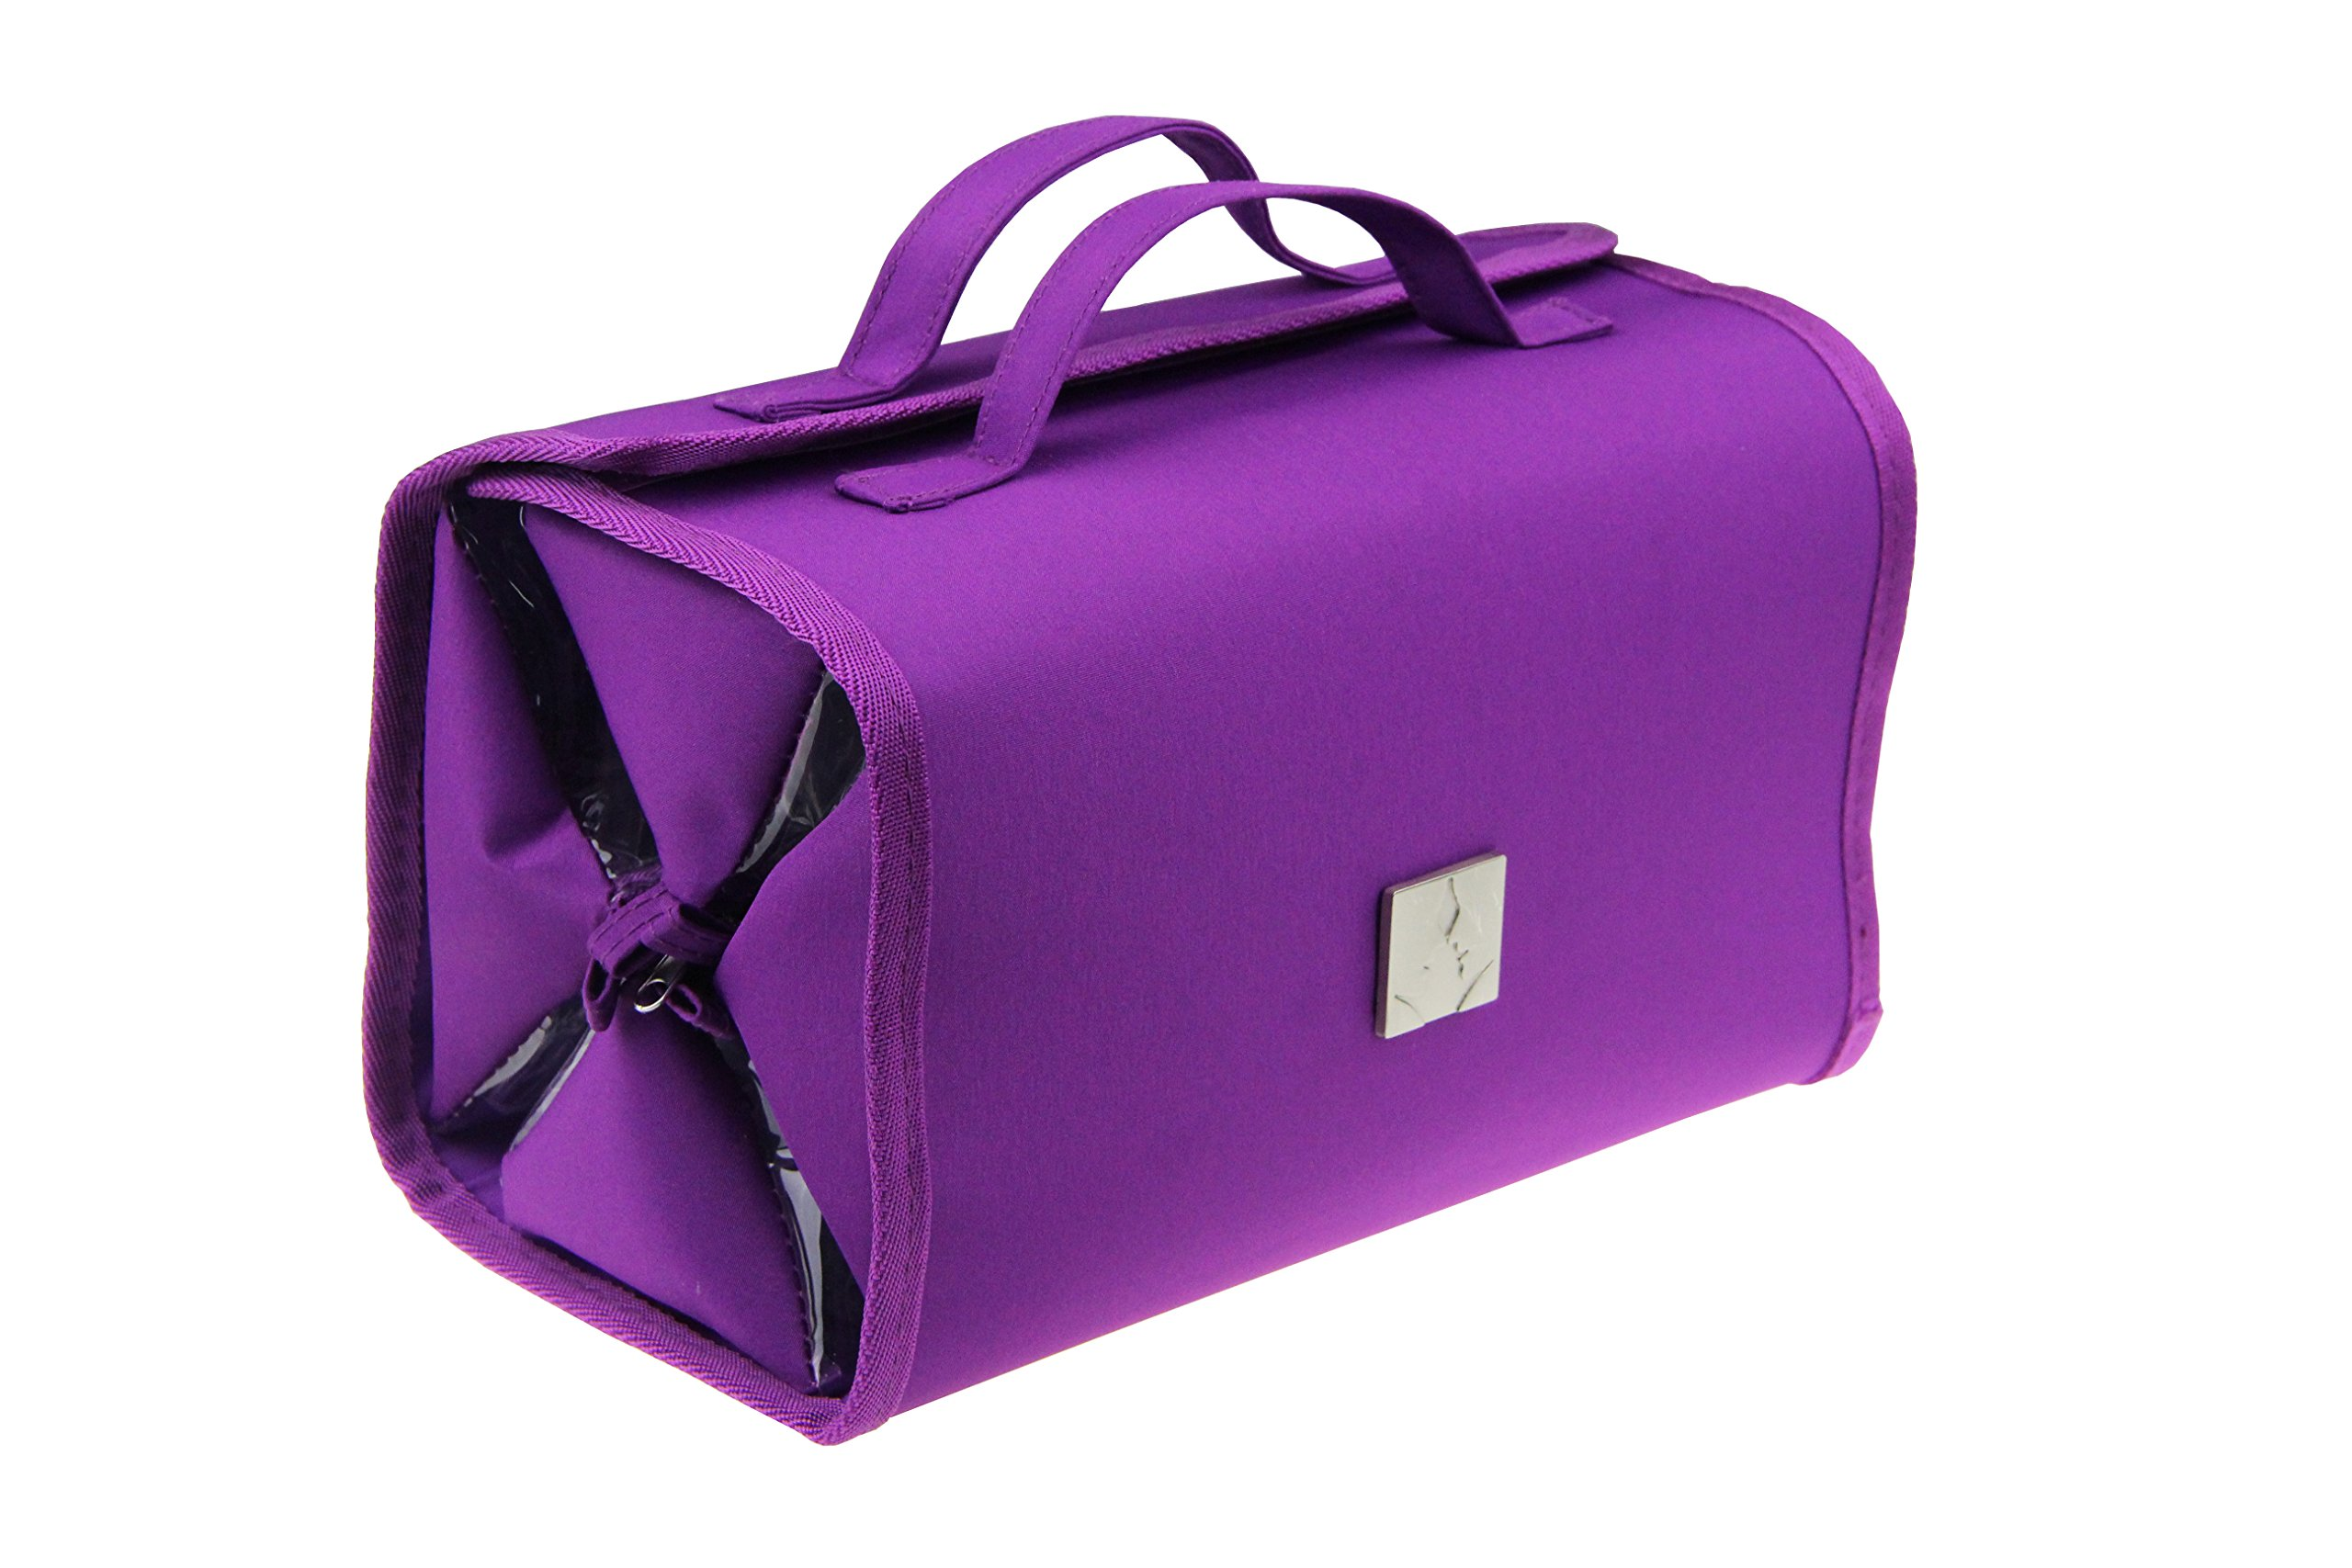 Amazon.com : UTRAX Travel Cosmetic Bag Roll Up Makeup